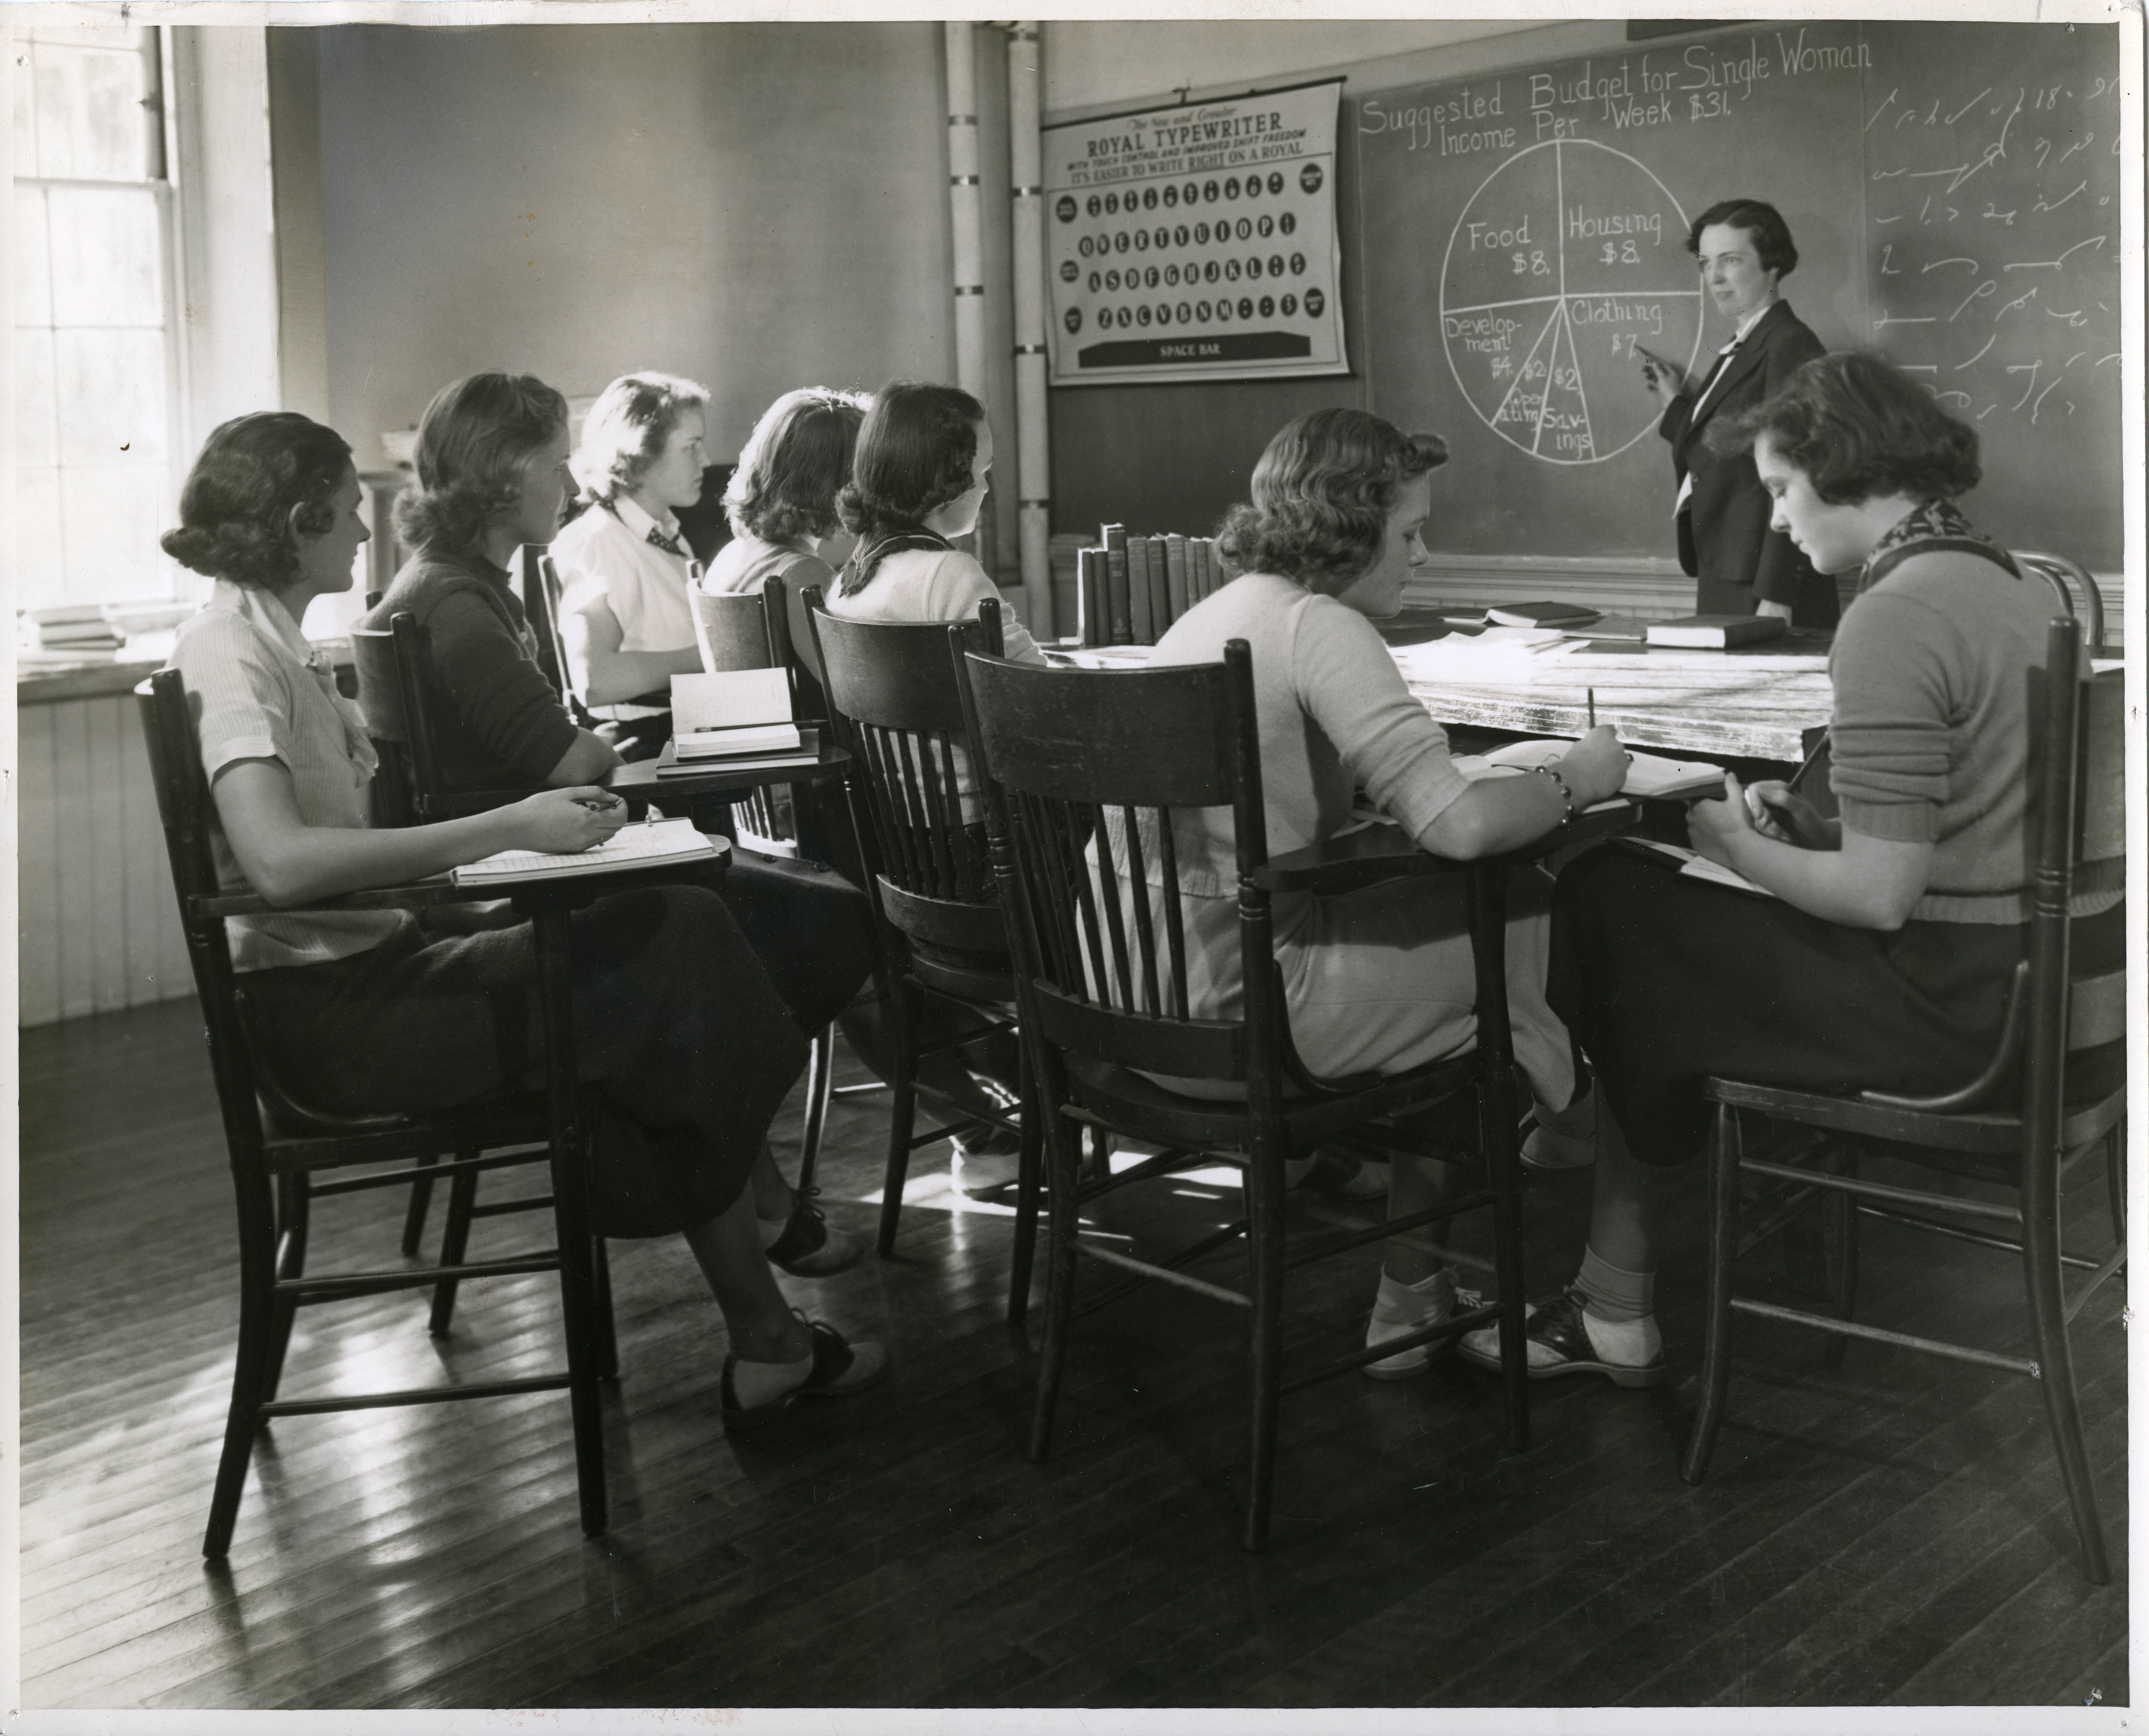 Abbot Academy Class, 1938/Dorothy Jarvis/flickr